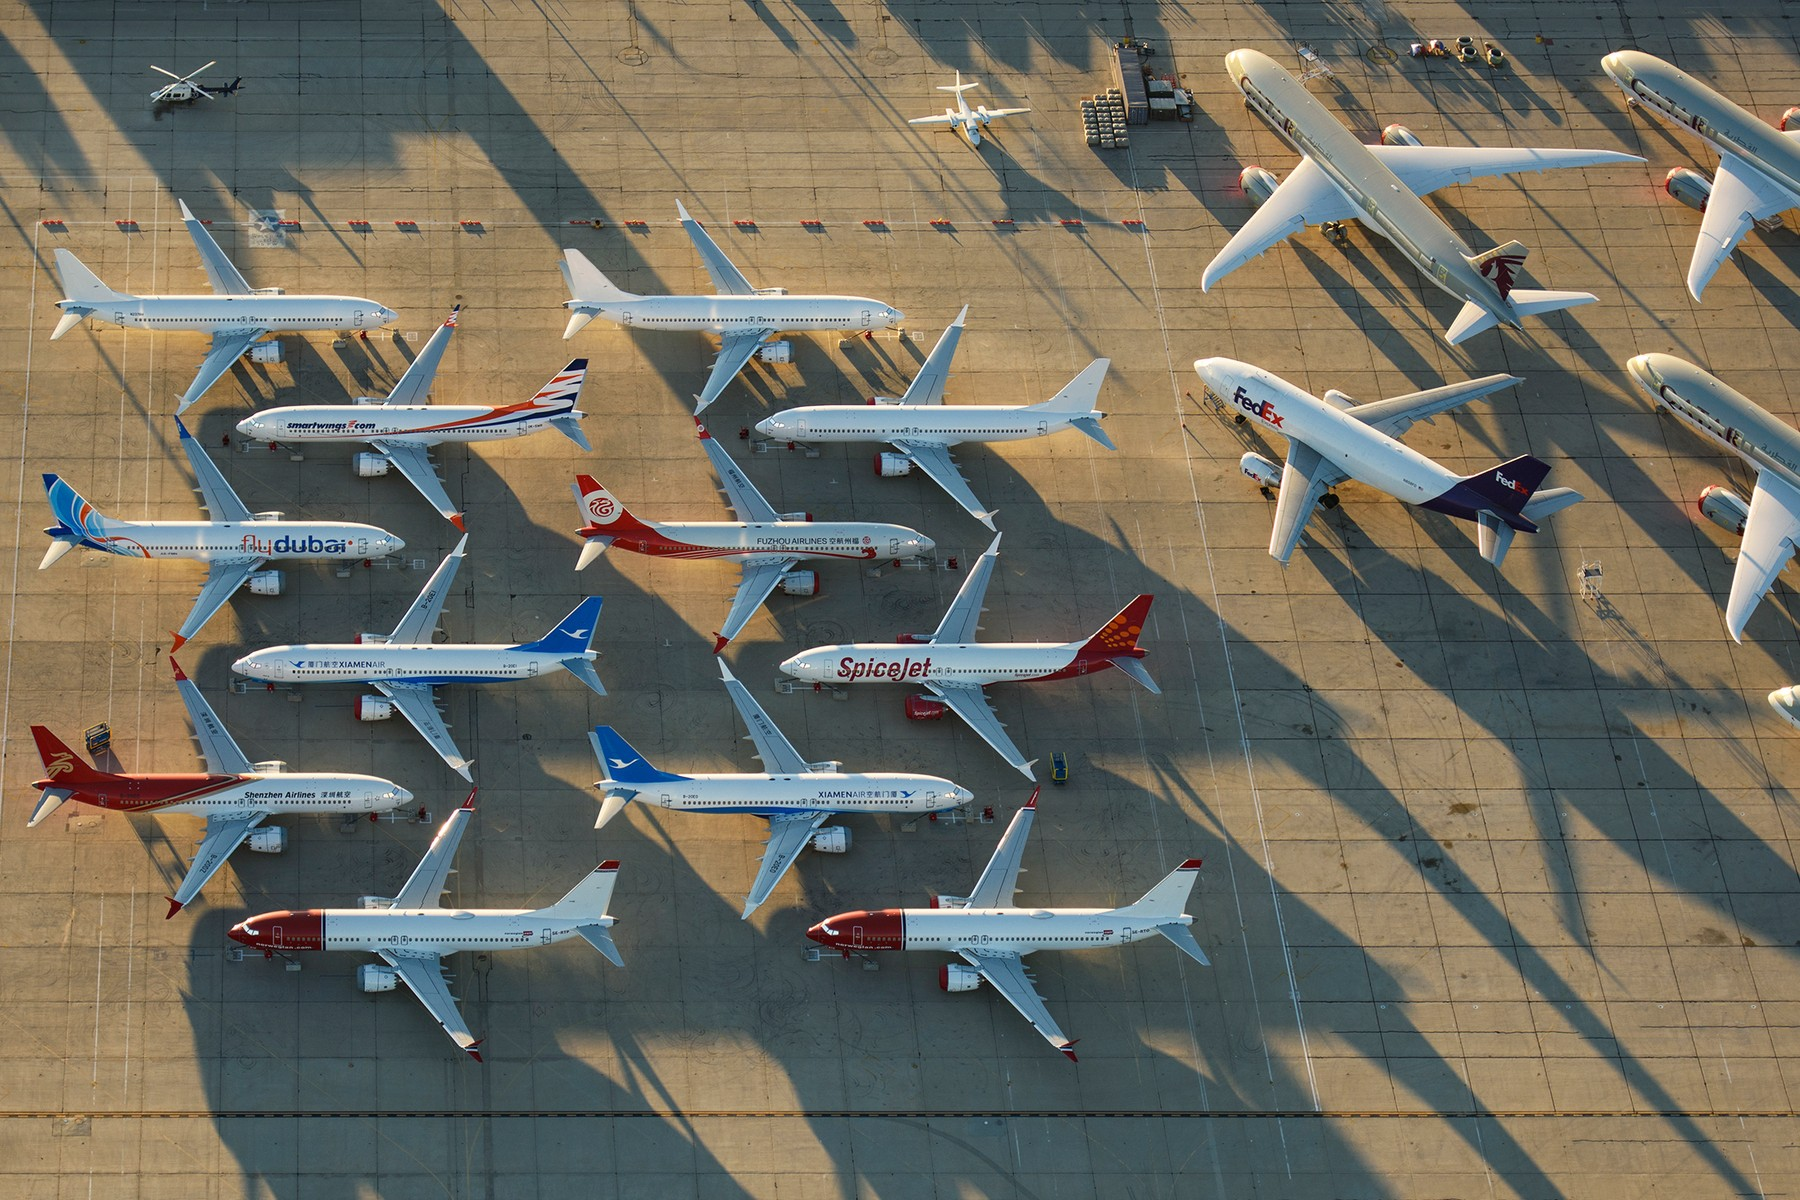 Pictured: Around 50 - 60 Boeing 737 Max, from 12 different airlines, are seen grounded at Victorville Airport in the Mojave Desert in California, USA.  Jassen Todorov took these images from his 1976 Piper Warrior Plane, as the one year anniversary approaches next month.  As a pilot himself, Jassen said